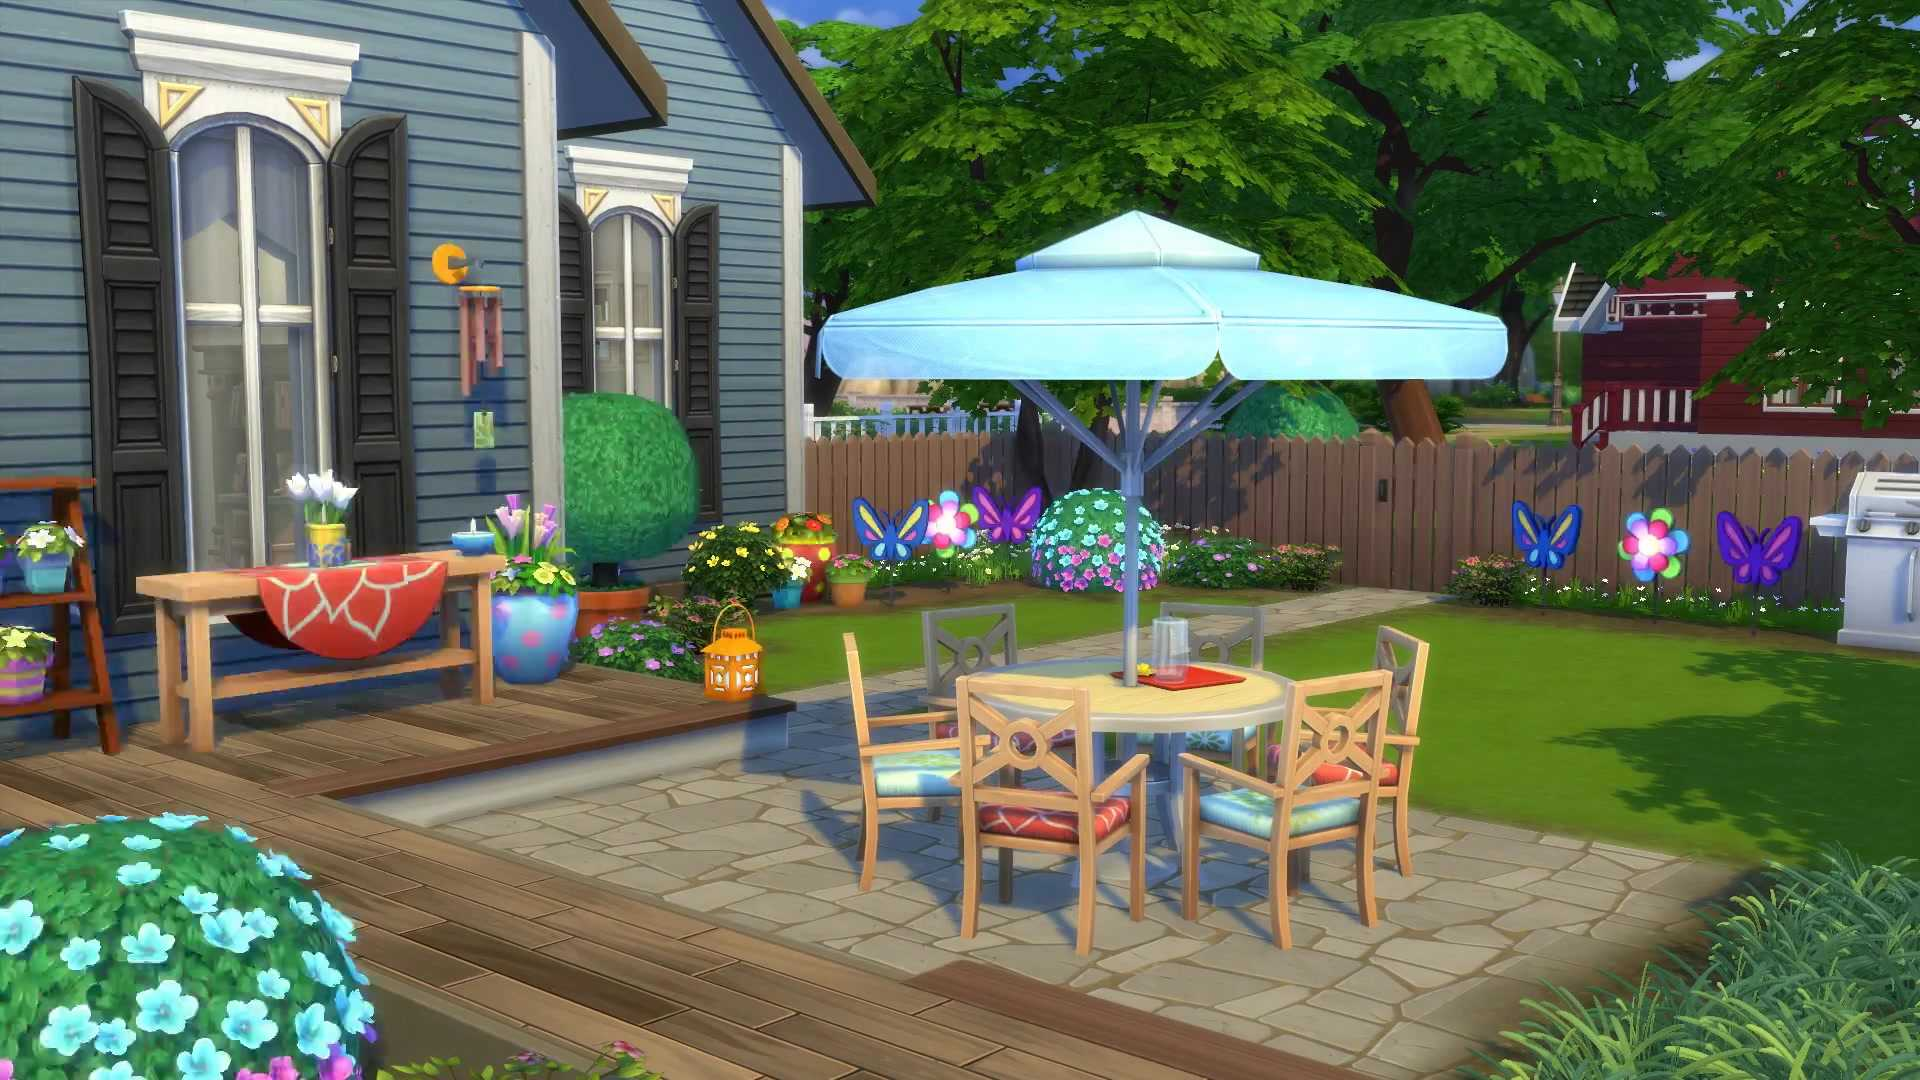 The Sims 4 Backyard Stuff DLC Gets Official Trailer And